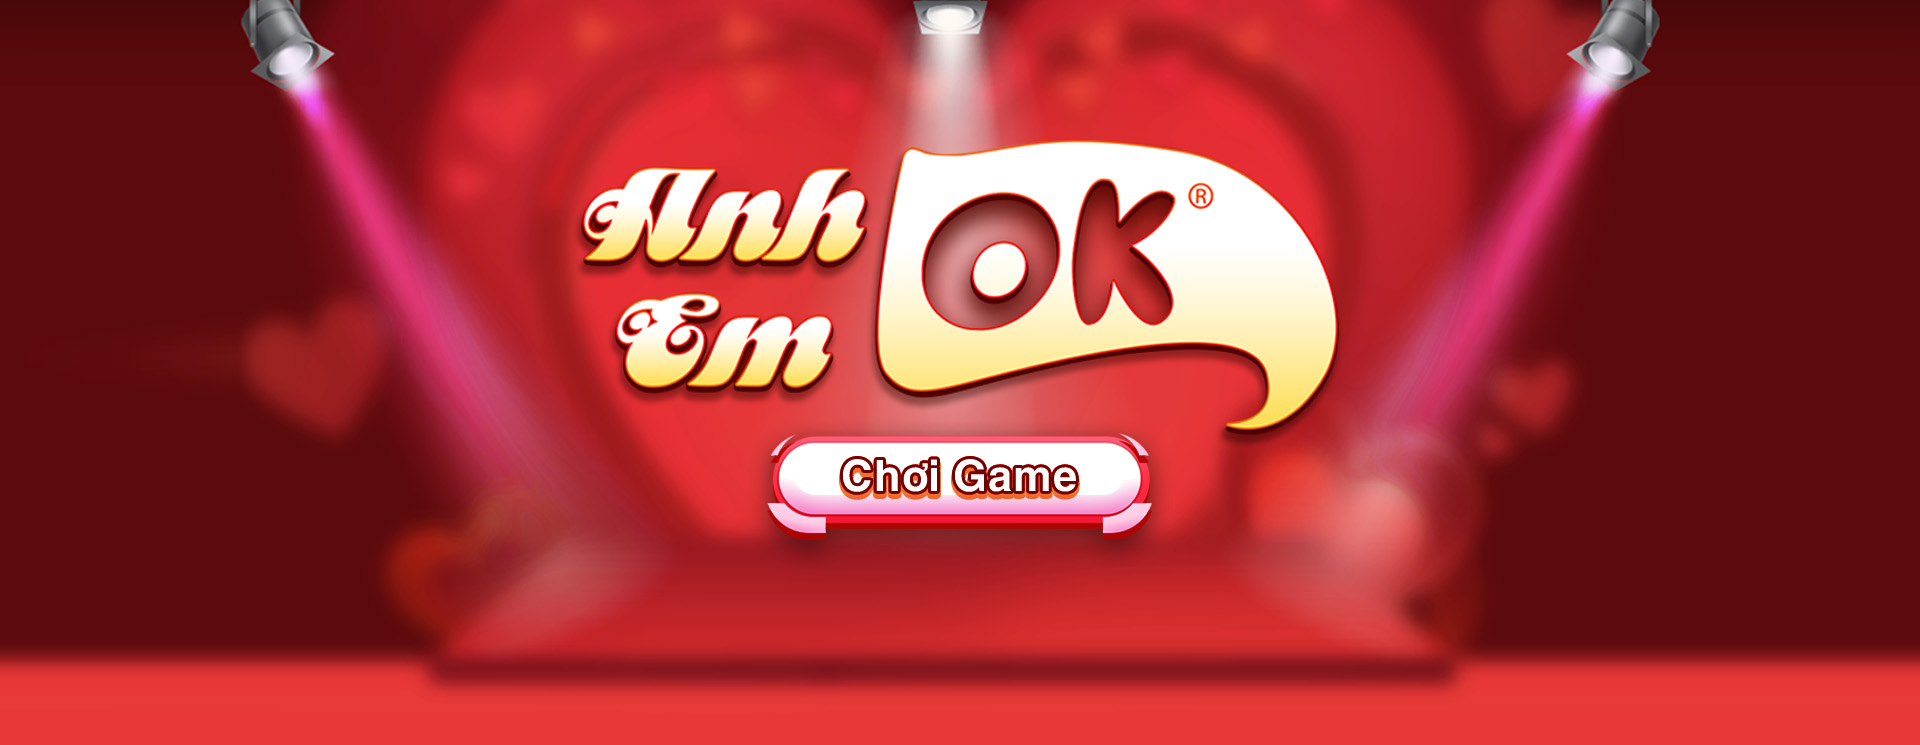 Game-Anh-OK